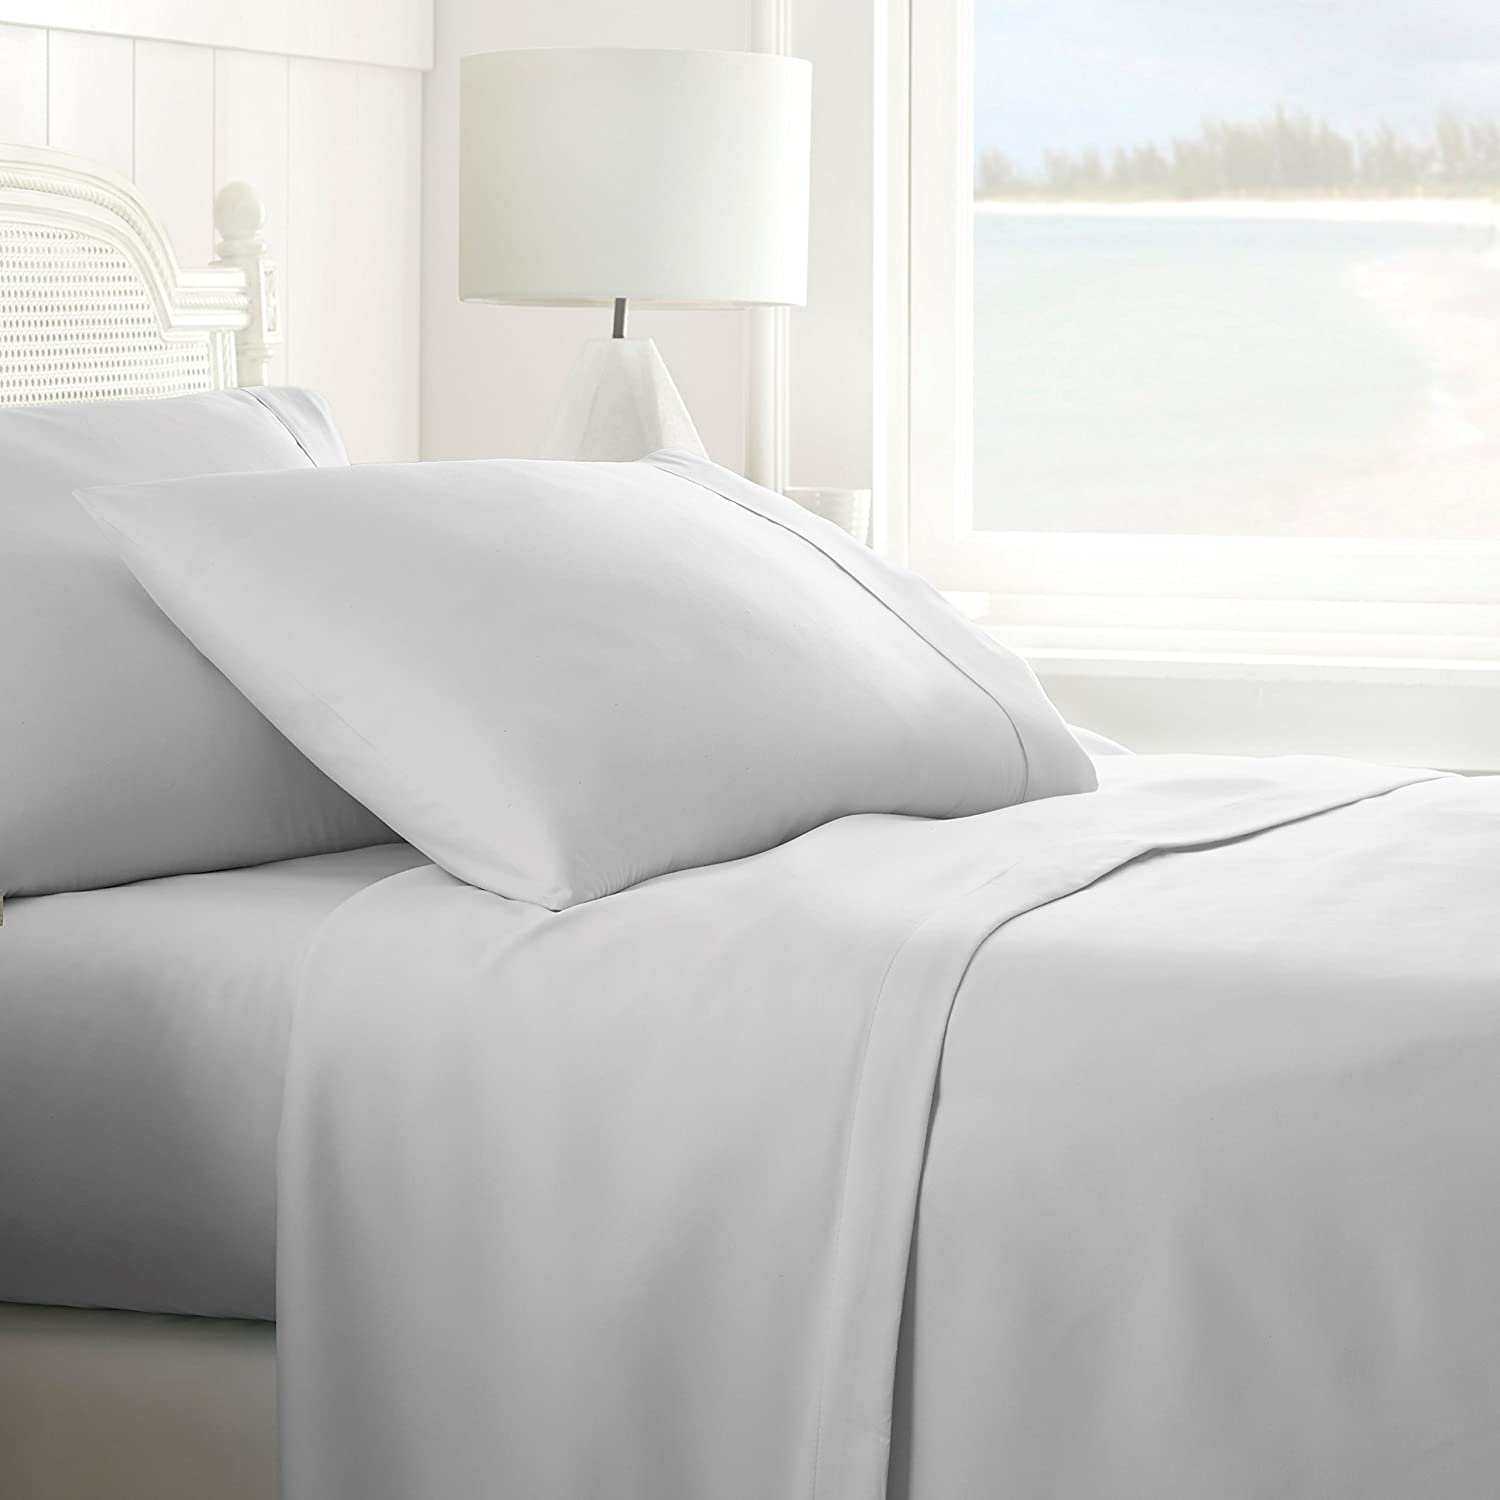 ienjoy Home Collection Premium 4 Piece Bed Sheet Set, LGRAY, FULL